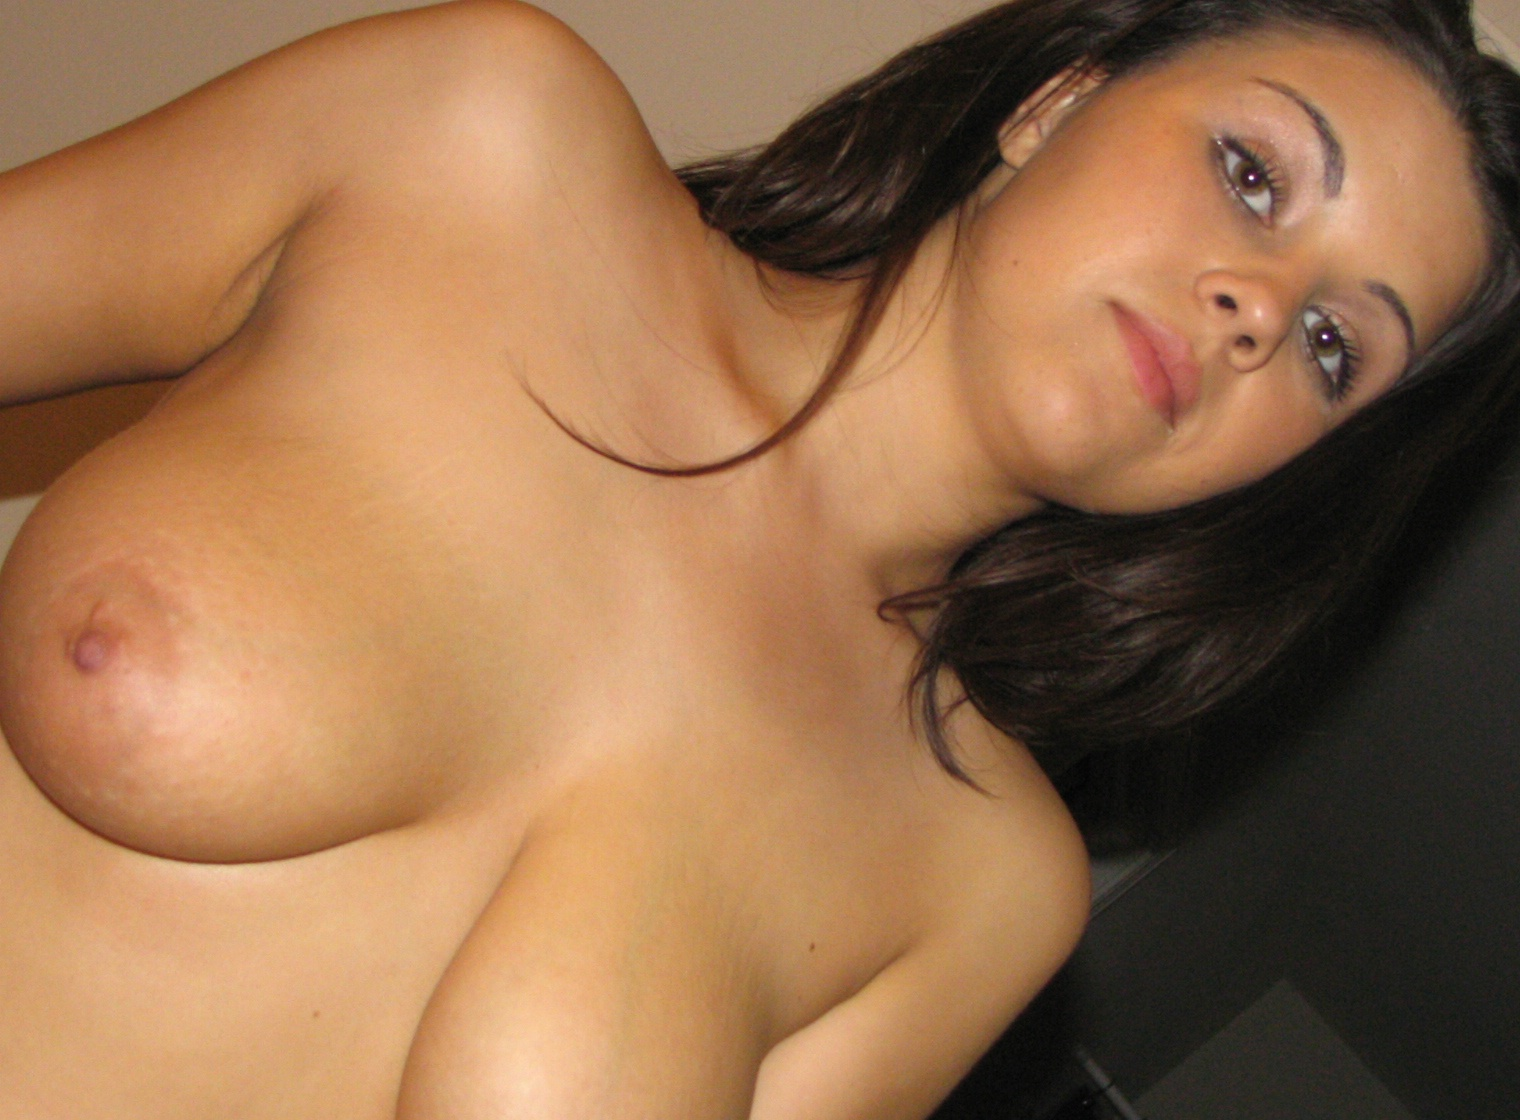 Hot Pictures From Fotos De Colombianas Desnudas En Charlotte N C Nenas